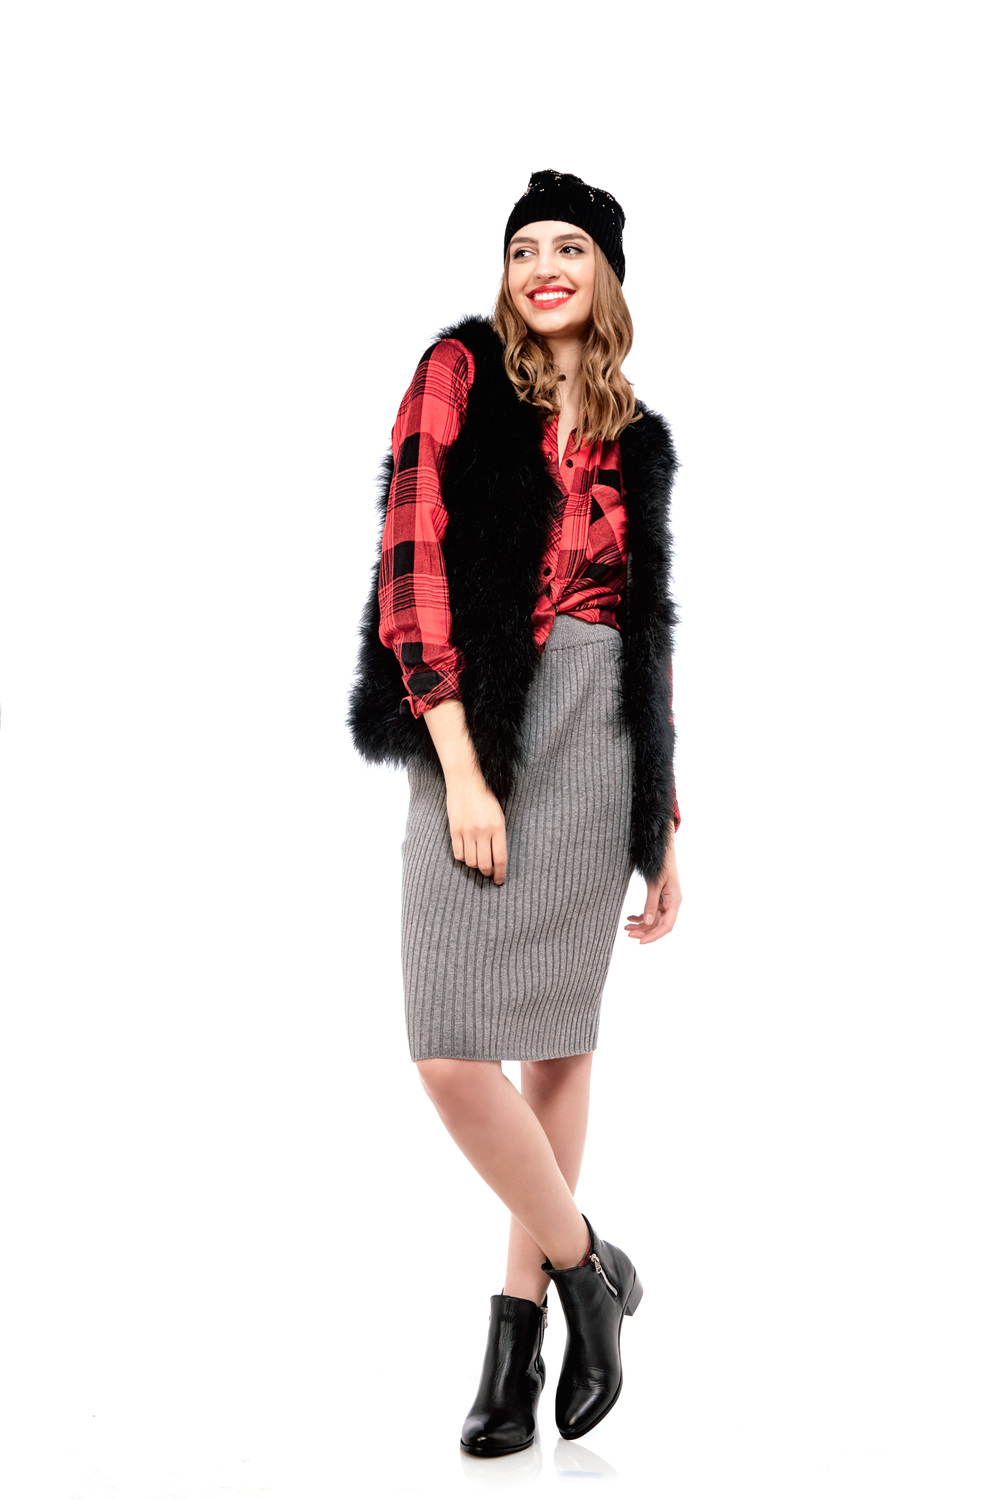 Plaid Shirt by Rails $198 | Feather Vest by Generation Love $398 | Knit Skirt by Glamorous $65 | Leather Booties by Cartel $220 | Beaded Toque by Rella $70